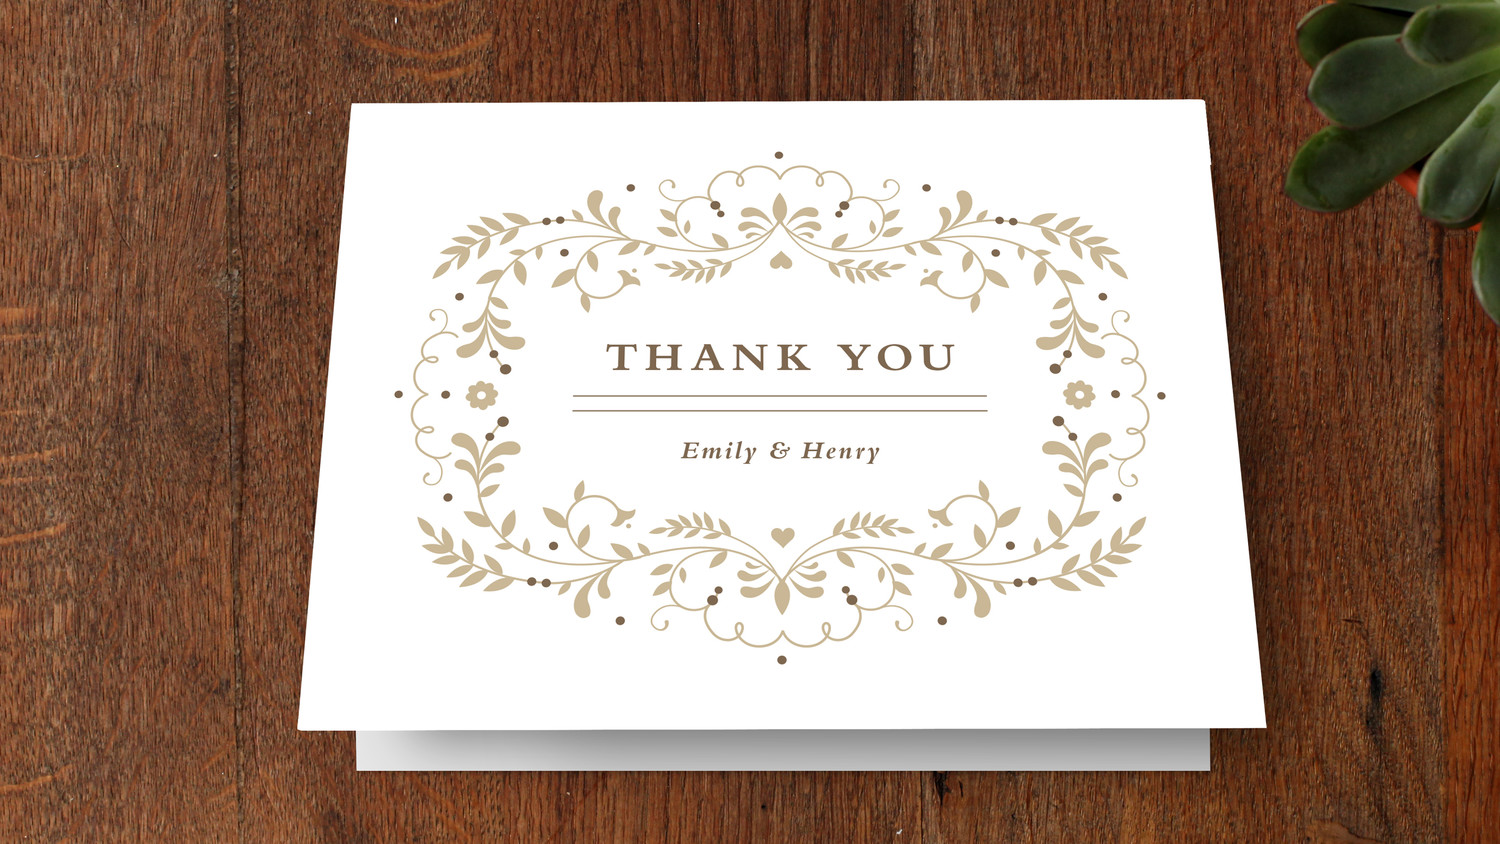 When Do You Send Thank You Notes For Wedding Gifts: Do You Need To Send Thank-You Cards For Engagement Gifts